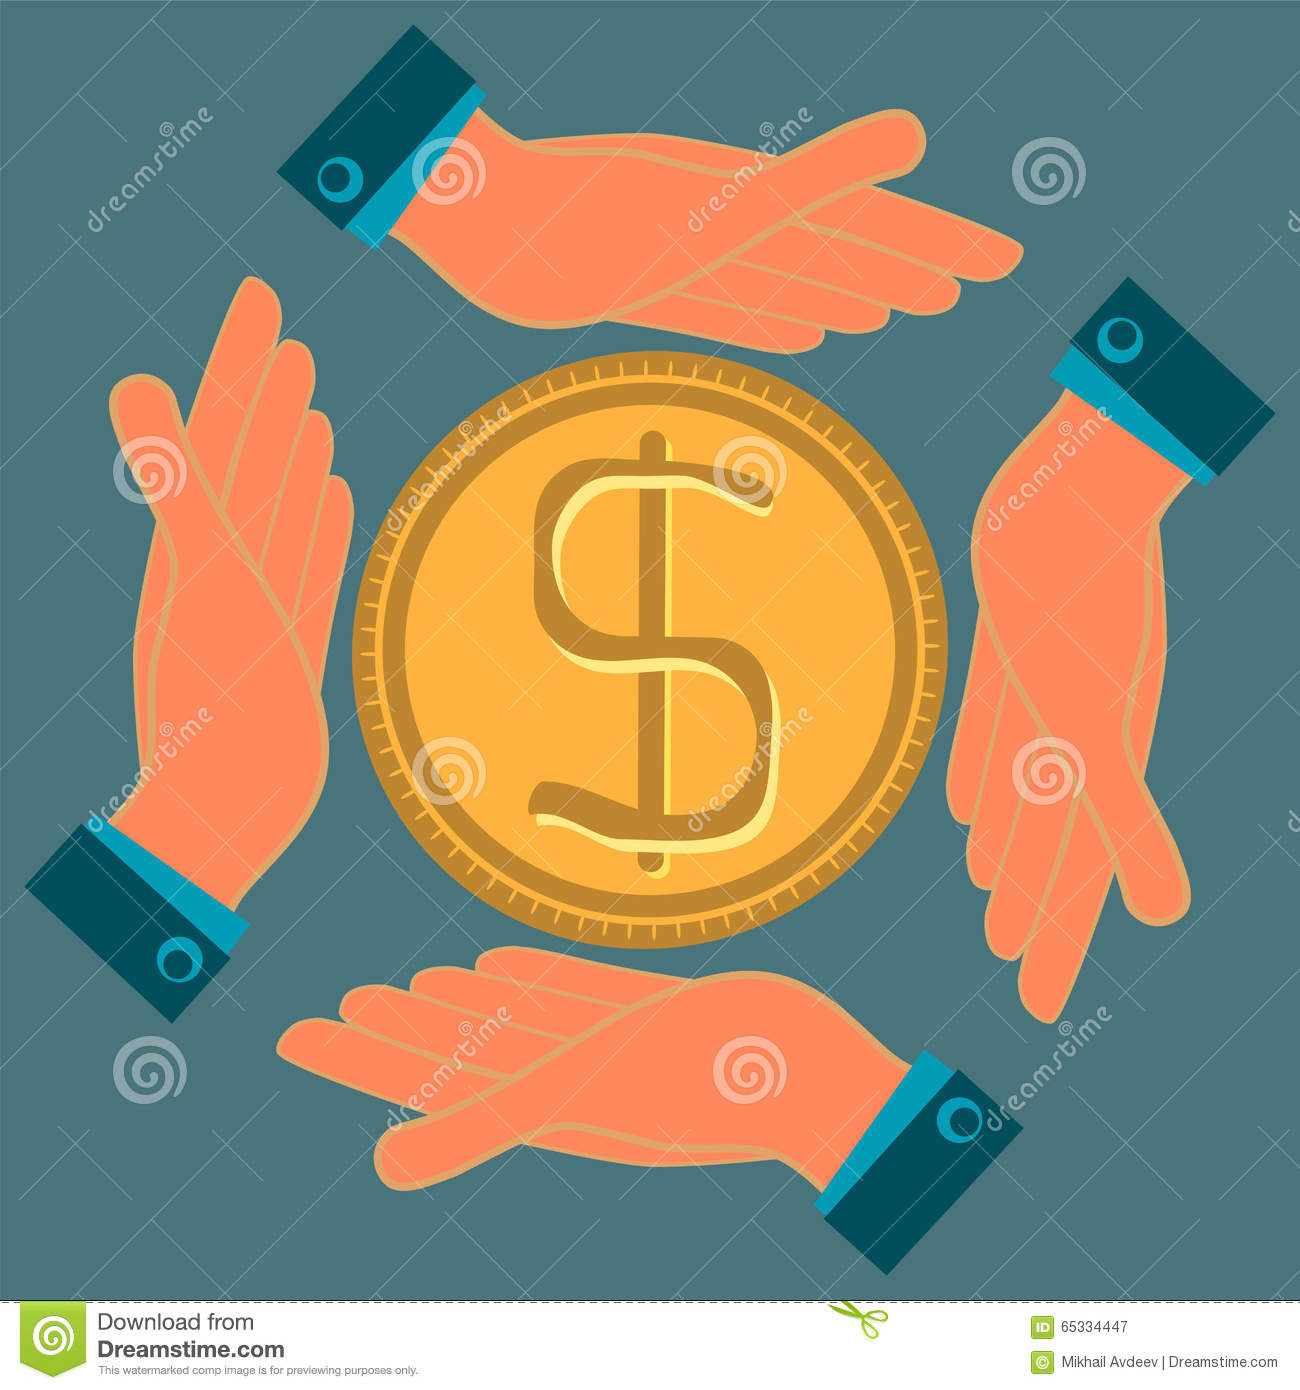 Hands protect a gold dollar coin.